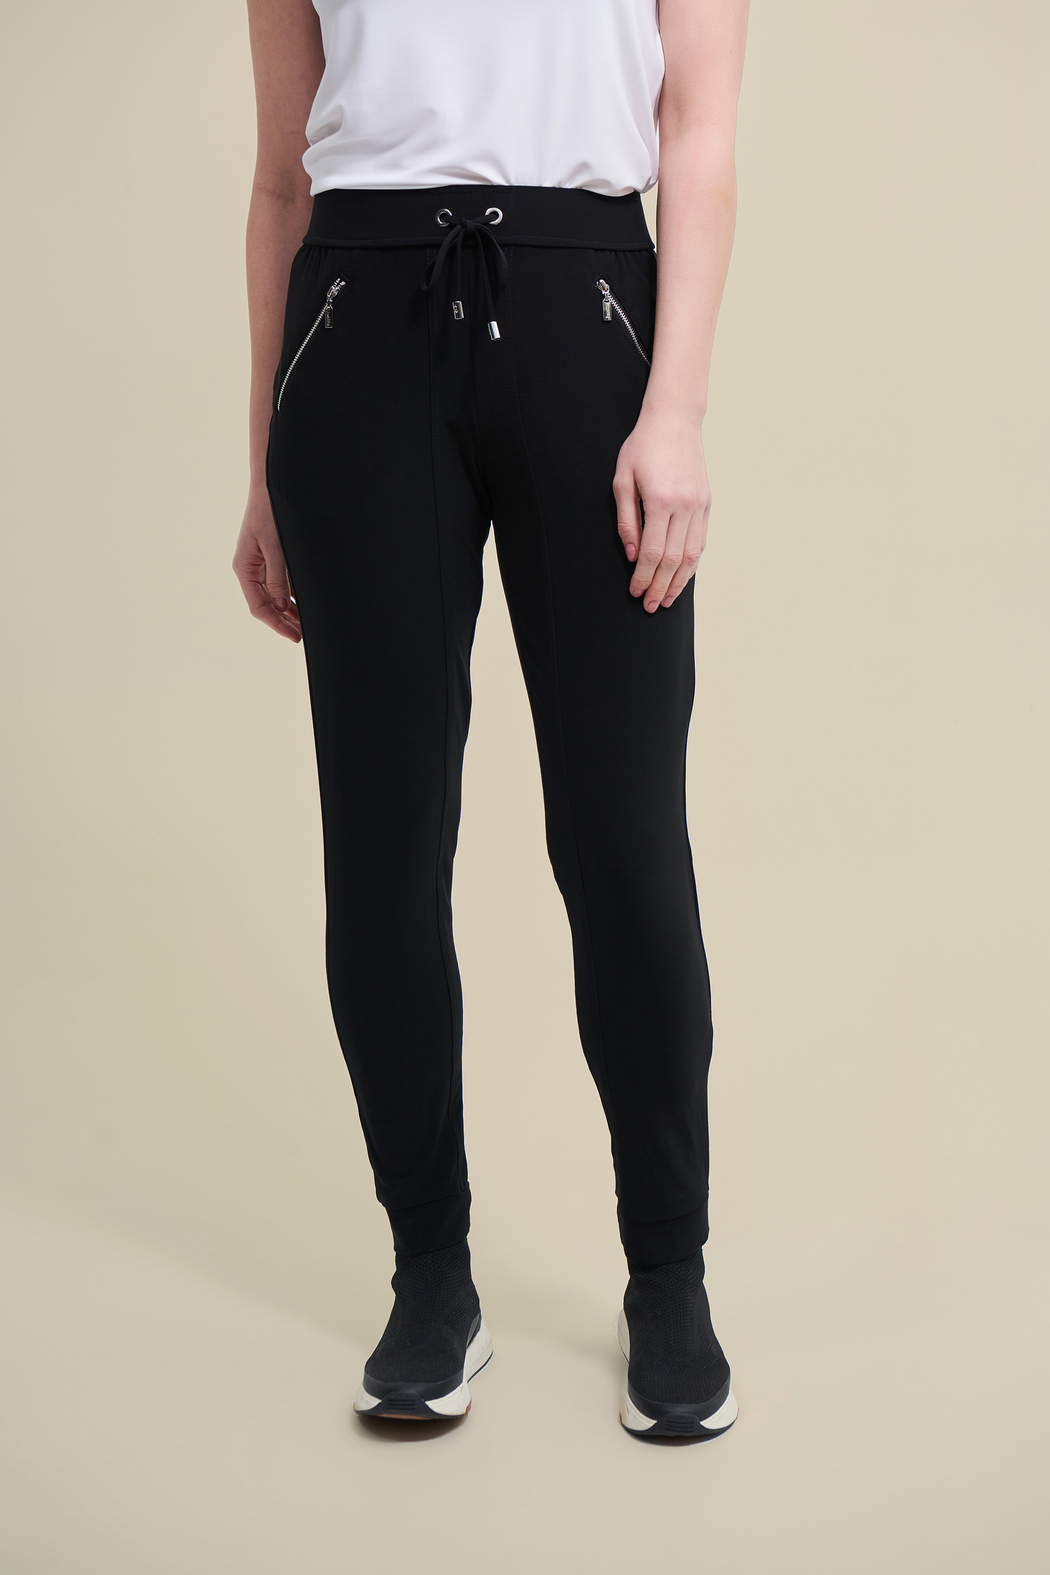 Joseph Ribkoff  Stretchy, black drawstring pants with zip pockets. - Main Image